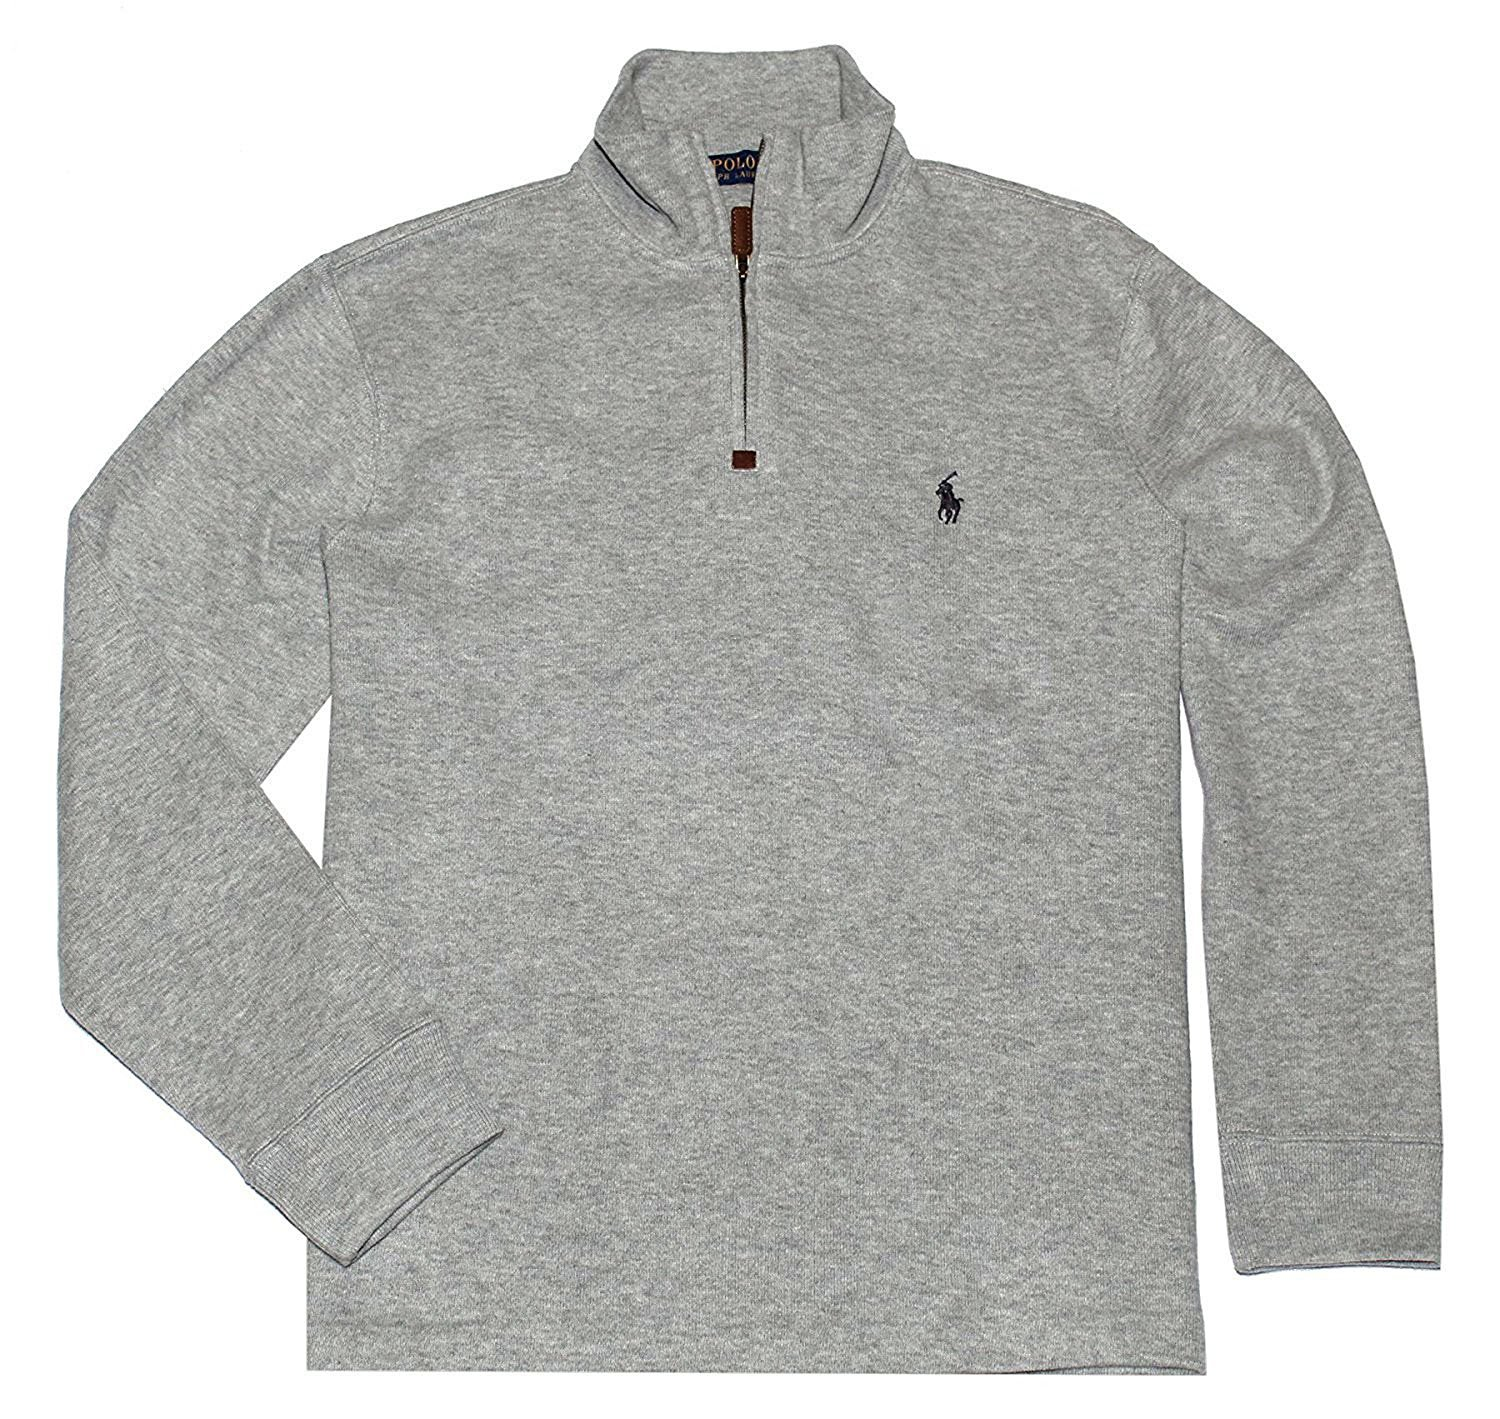 Polo Ralph Lauren Men's French Rib Knit Half Zip Pullover Sweater Heather Grey Large